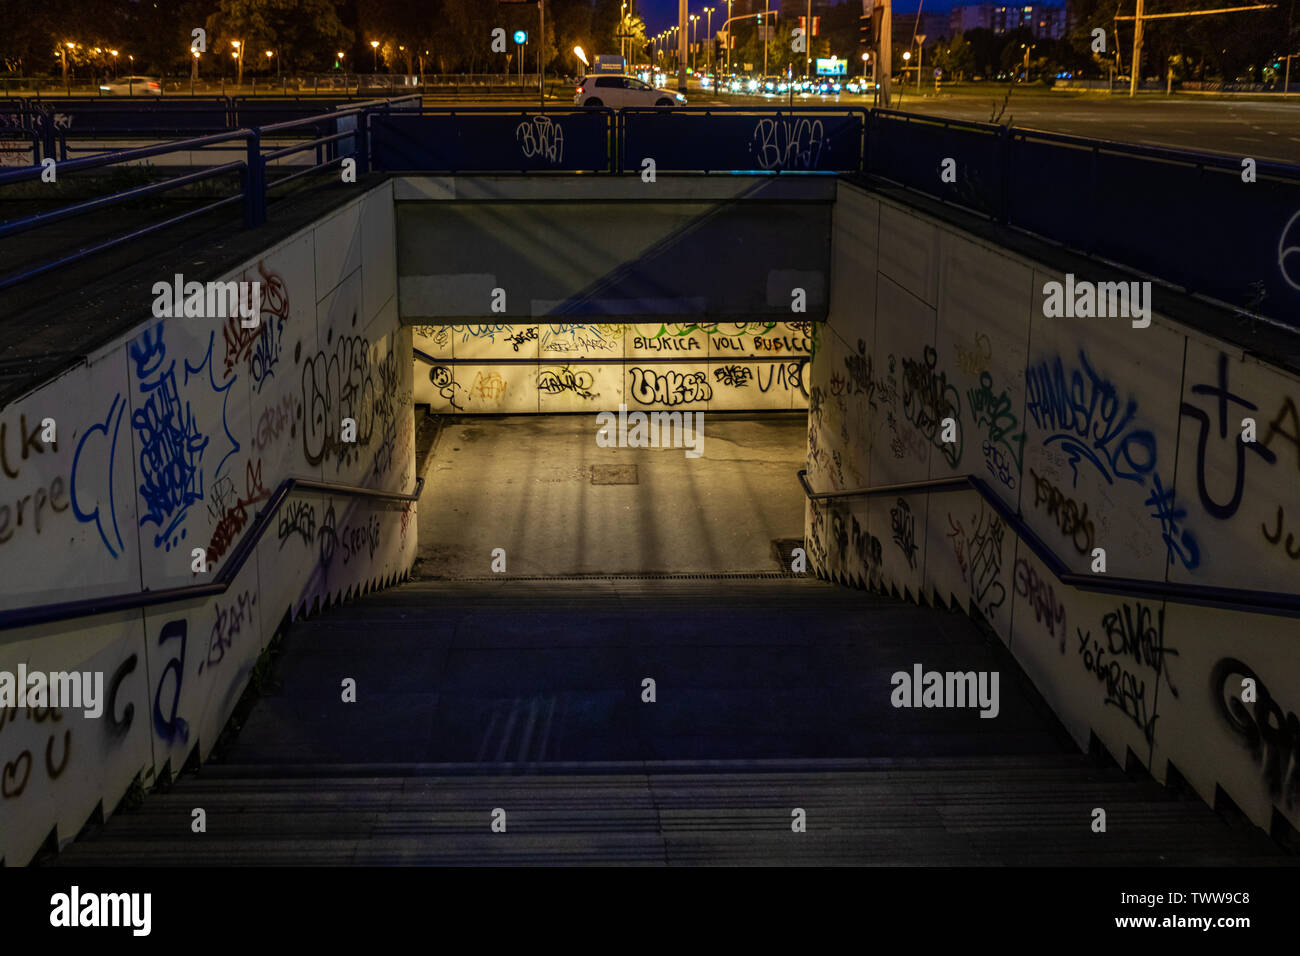 Croatia, Zagreb, June 21, the dark passage of a deserted, eerie creepy concrete indoor urban pathway grafted with graffiti at night Stock Photo